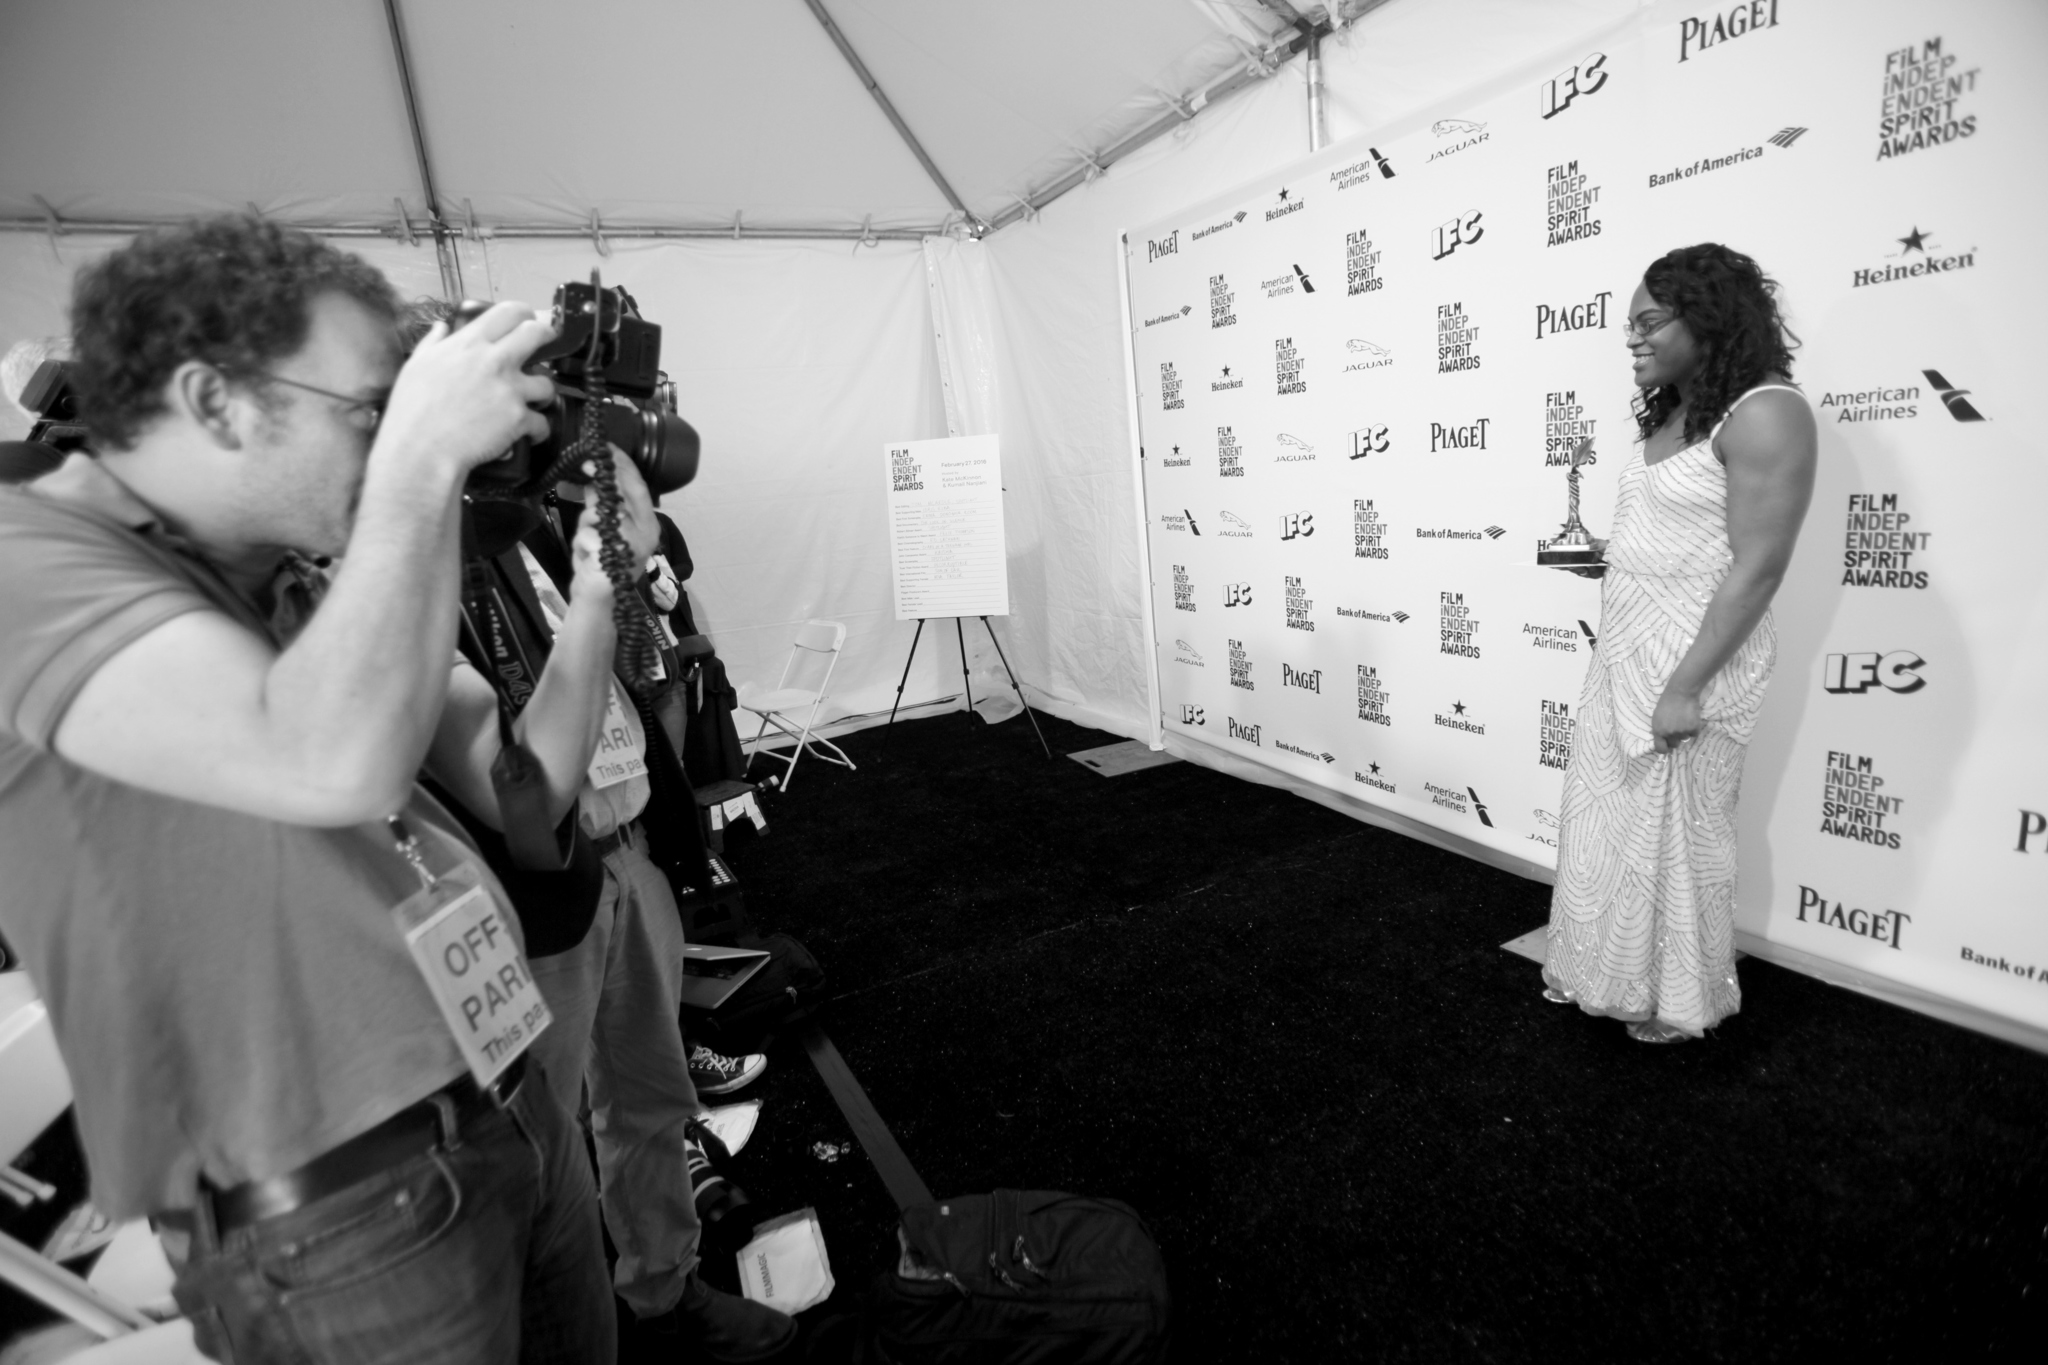 Mya Taylor at an event for 31st Film Independent Spirit Awards (2016)